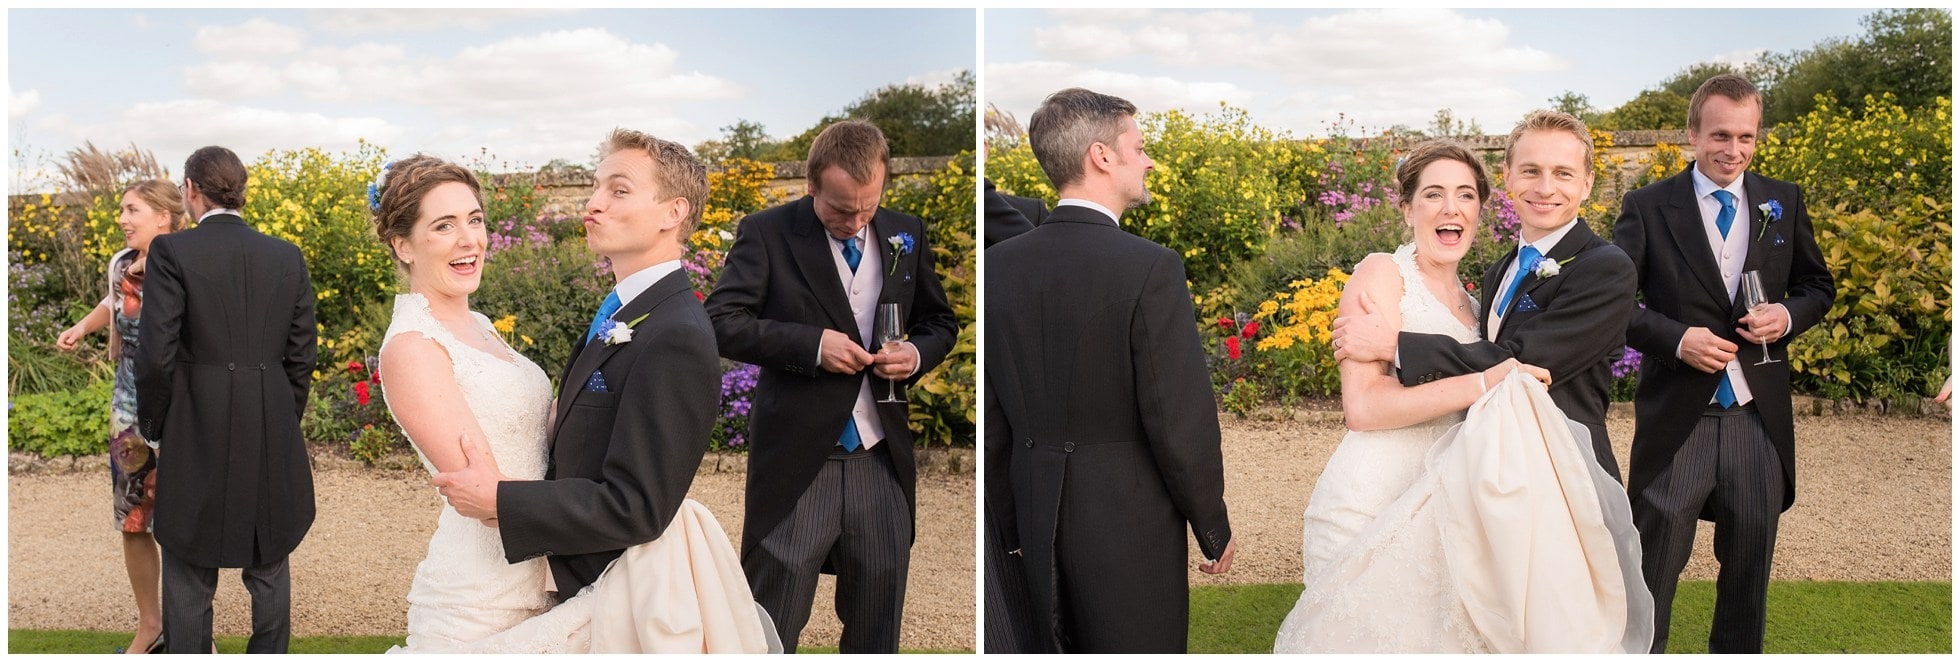 Bride and groom goofing around in the masters garden christ church college oxford